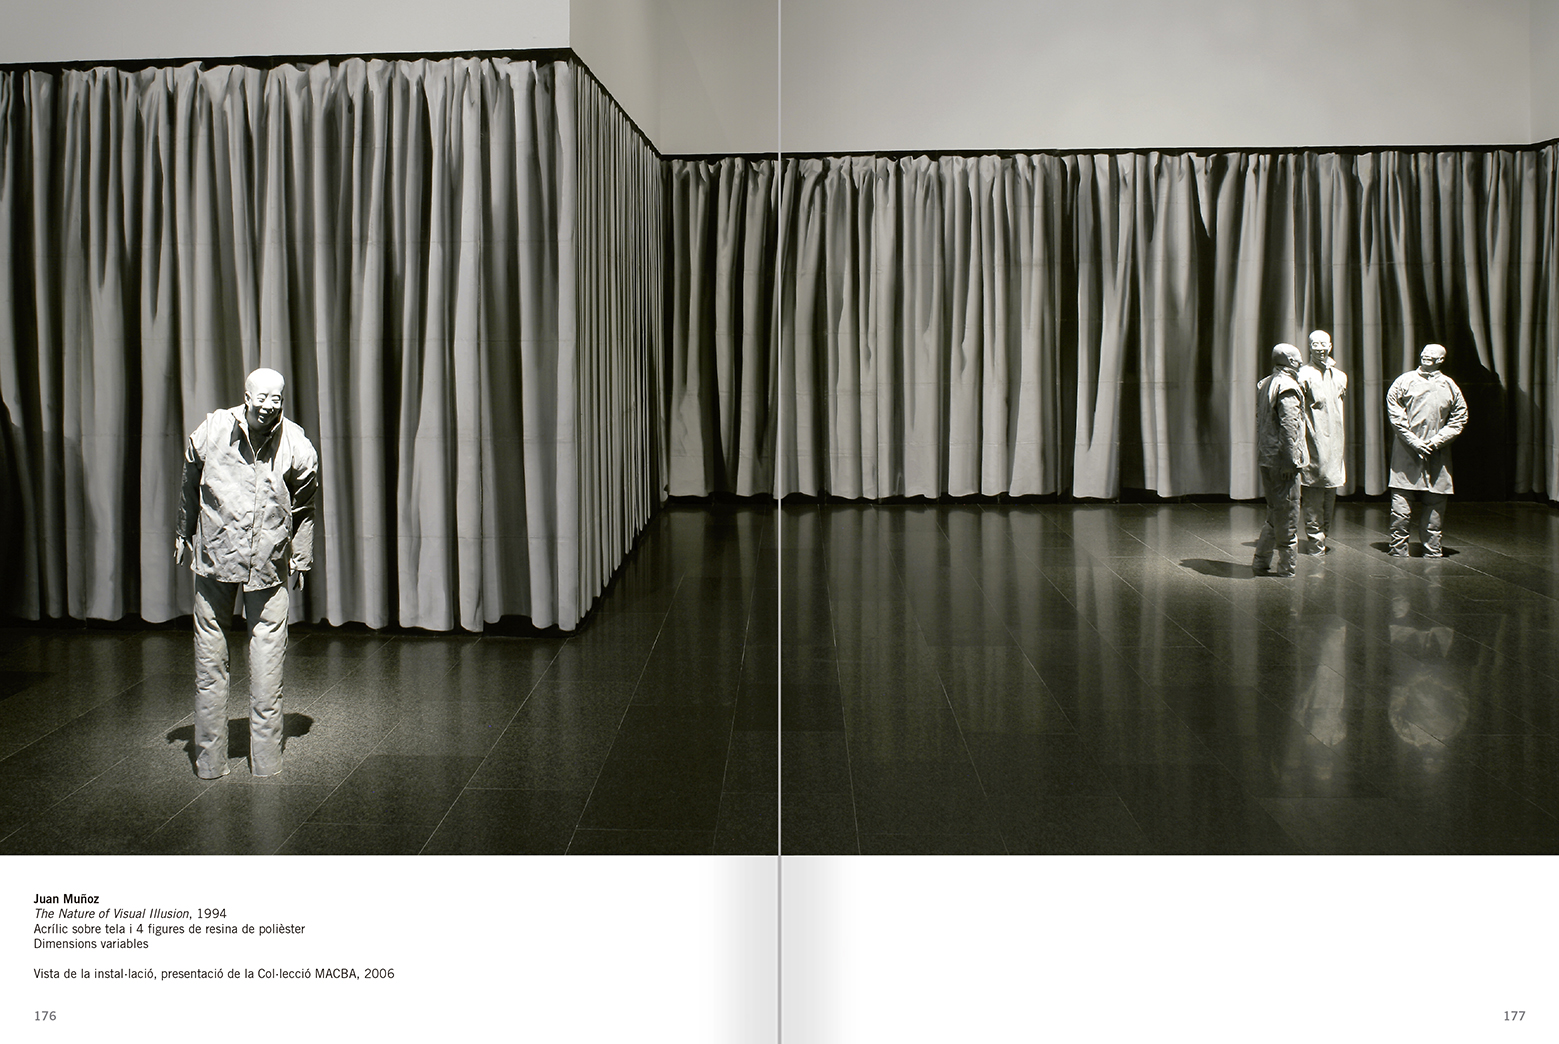 Selection from the catalogue 'Relational Objects. MACBA Collection 2002-07', pages 176 and 177